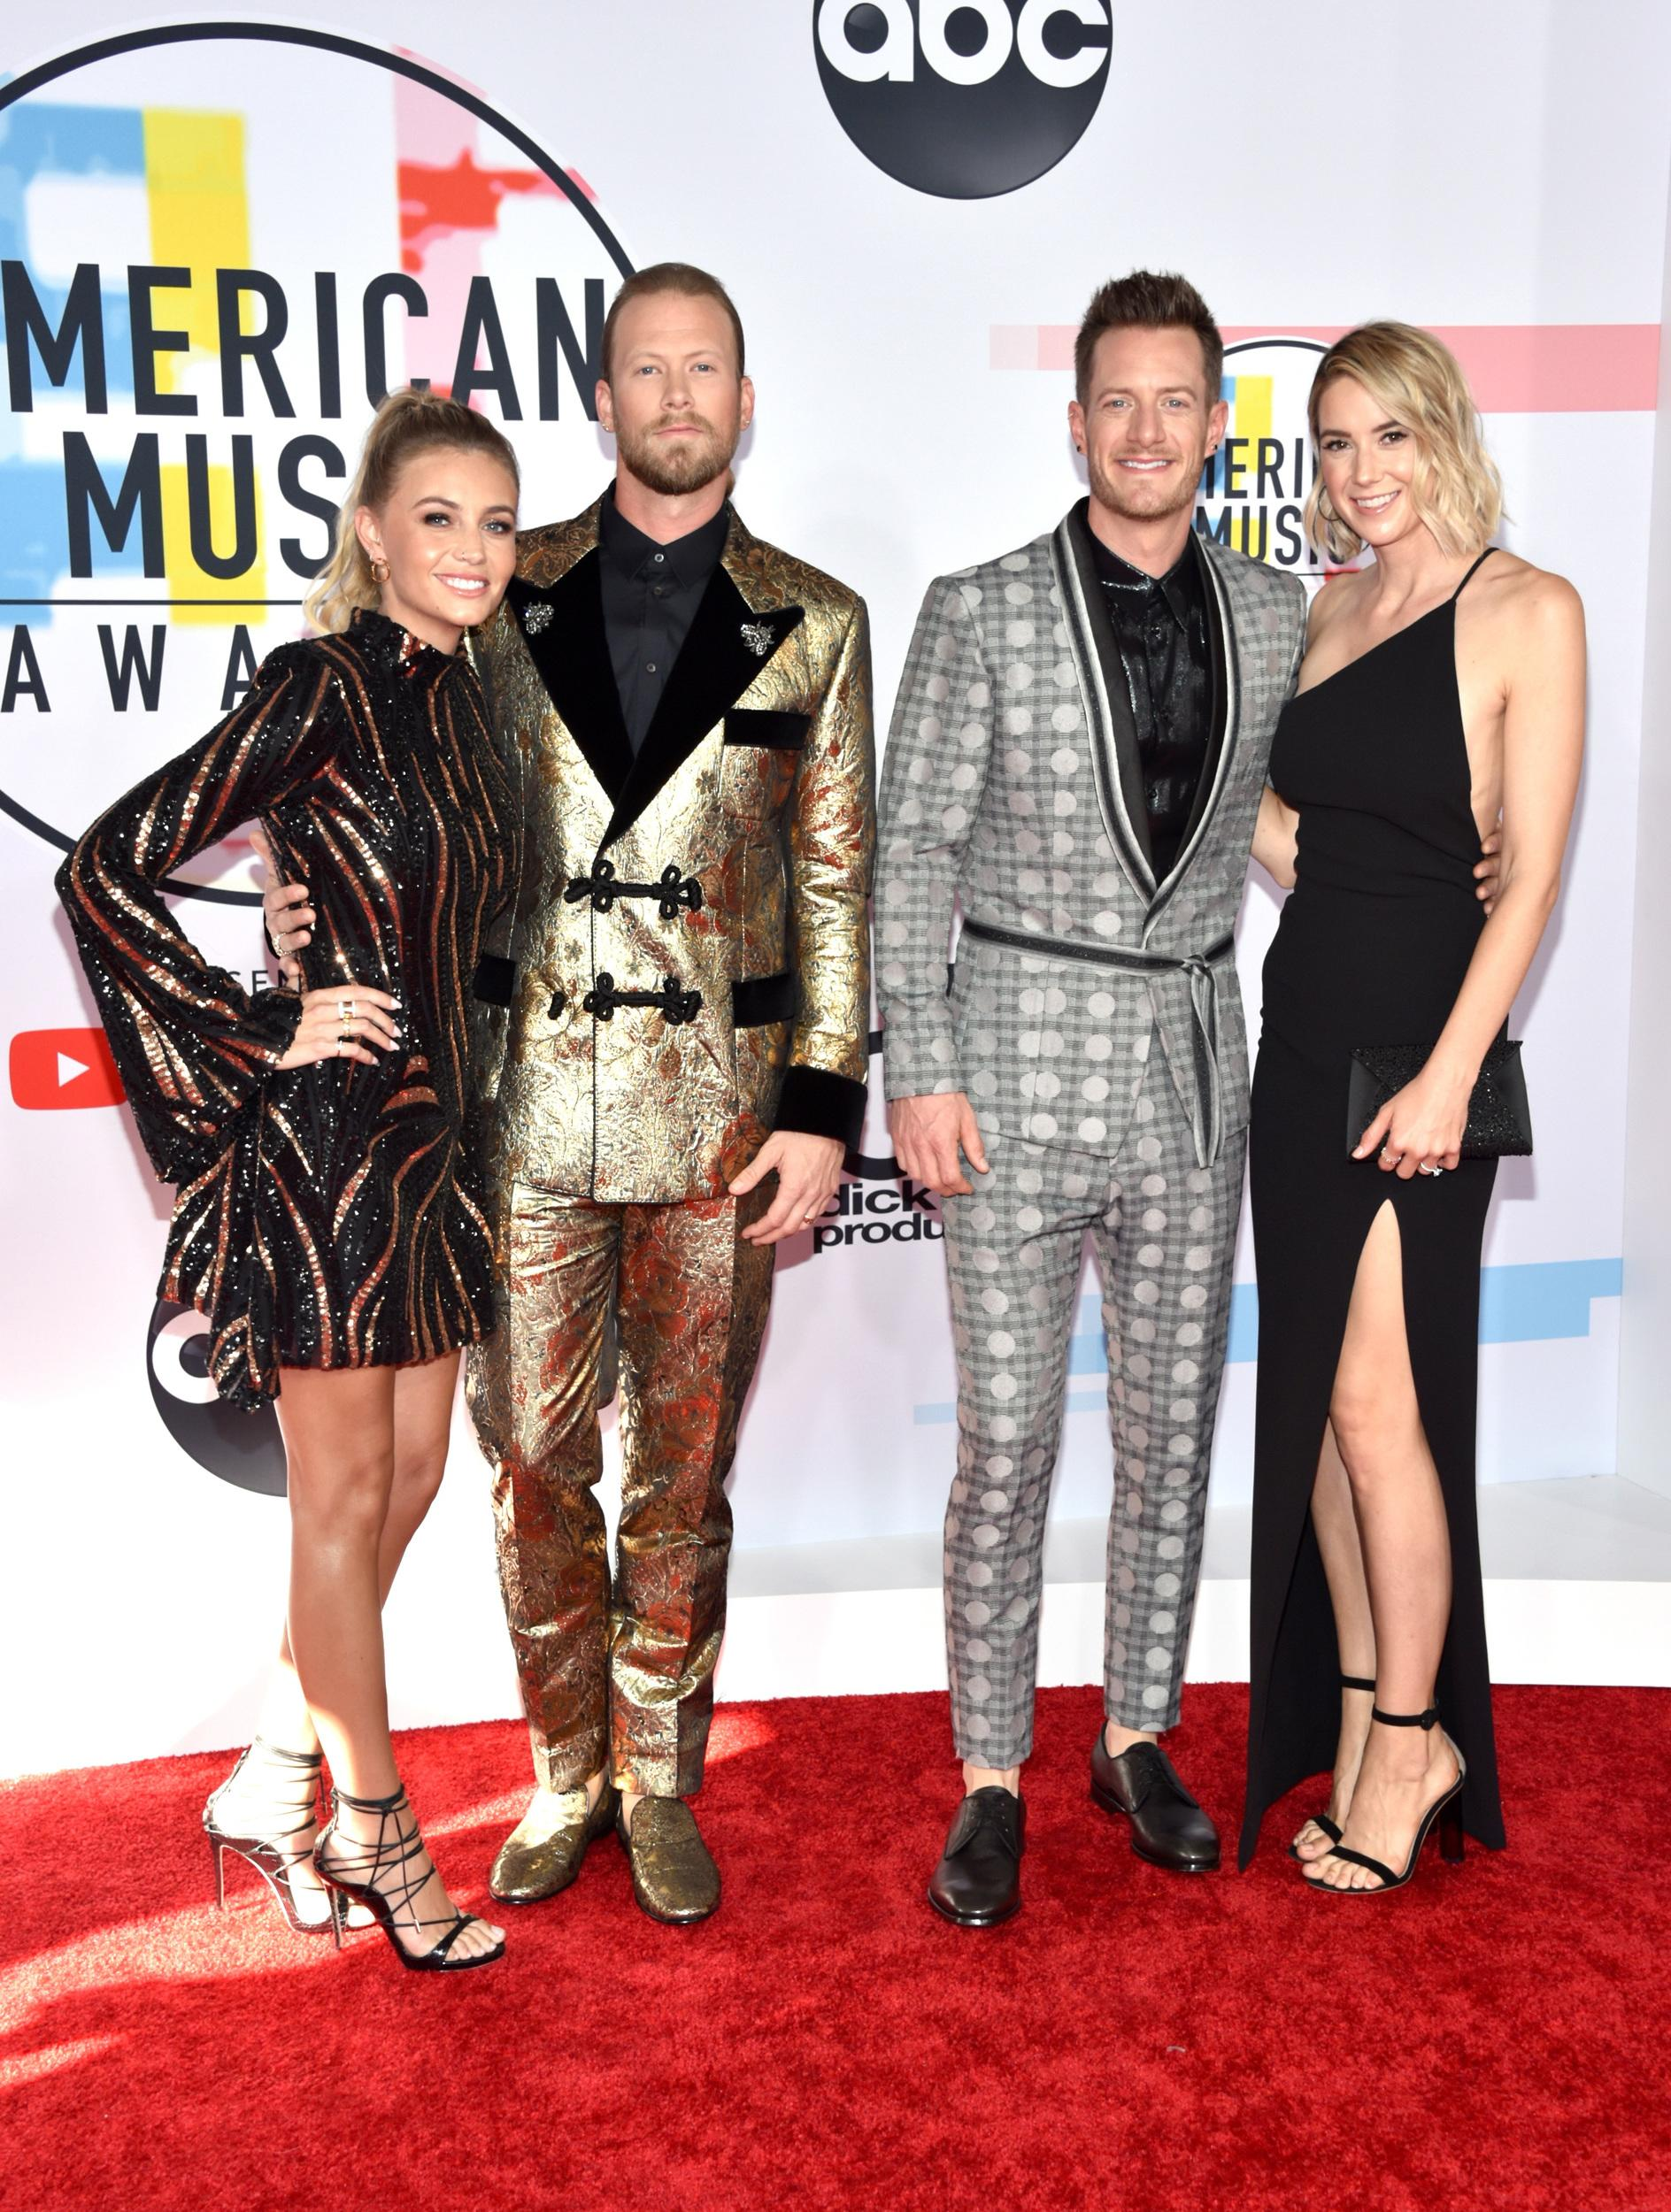 LOS ANGELES, CA - OCTOBER 09:  Tyler Hubbard (2nd L) and Brian Kelley (2nd R) of Florida Georgia Line with Hayley Stommel (L) and Brittany Cole (R) attend the 2018 American Music Awards at Microsoft Theater on October 9, 2018 in Los Angeles, California.  (Photo by John Shearer/Getty Images For dcp)